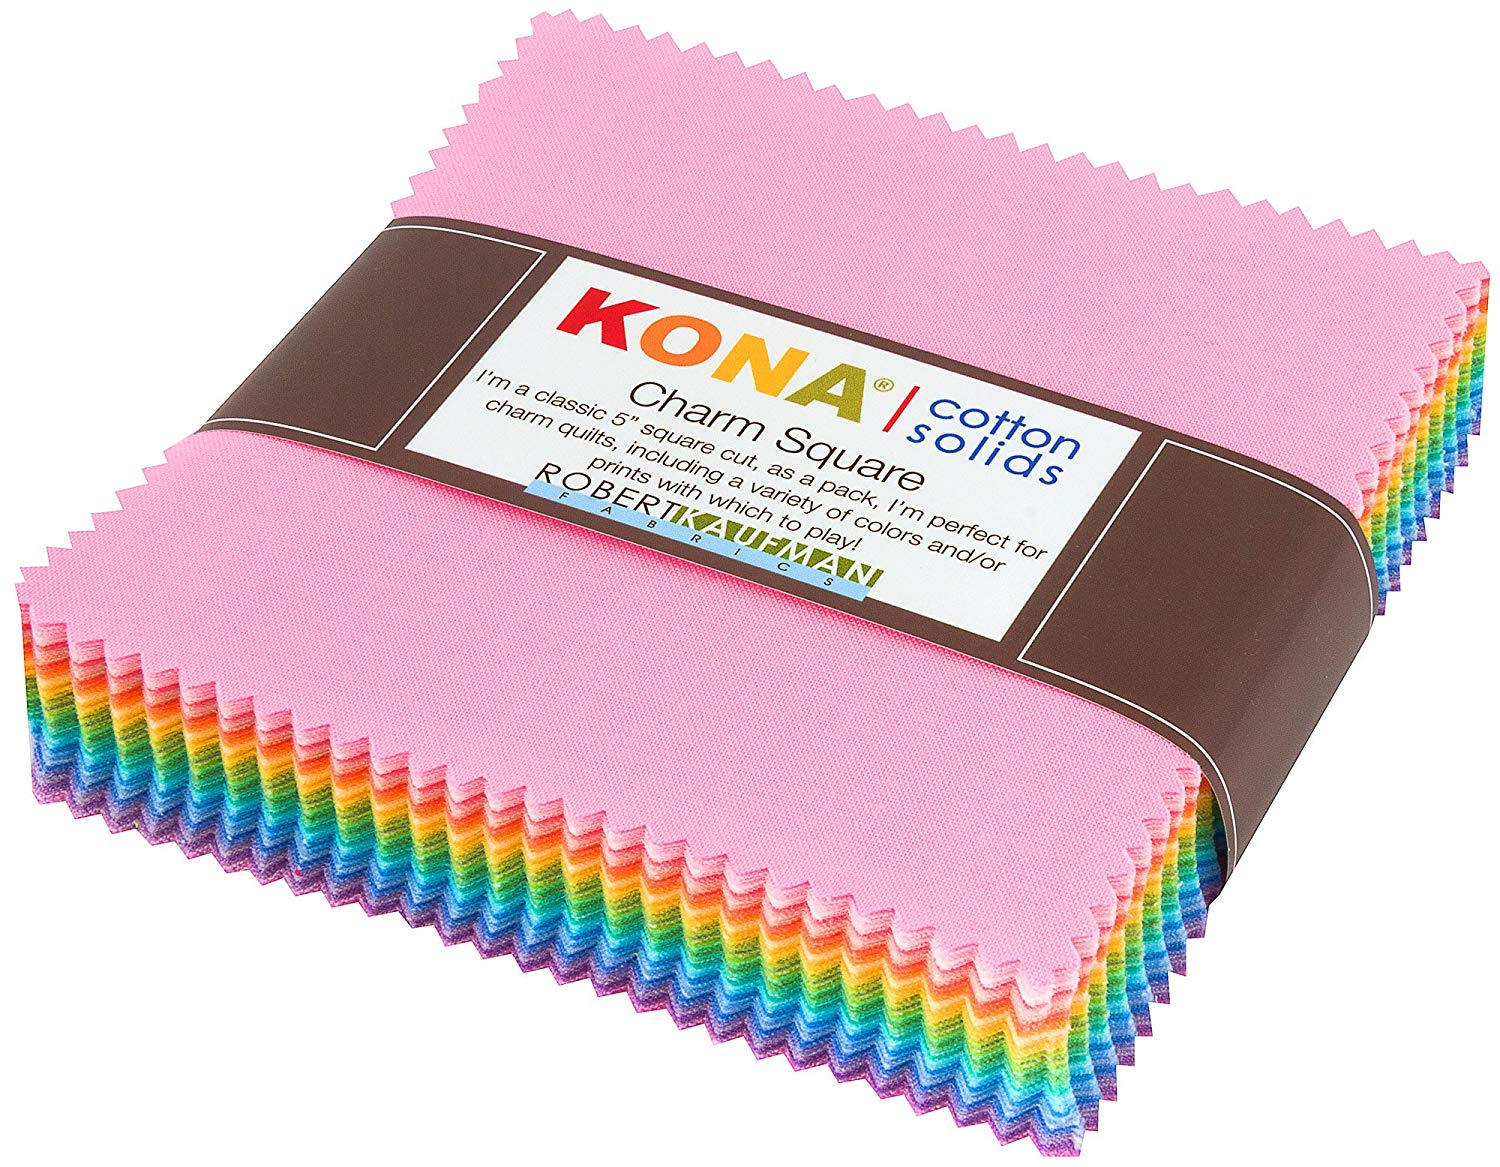 "Kona Cotton Solids: Pastel Charm Square; 85 5"" Squares - Robert Kaufman"